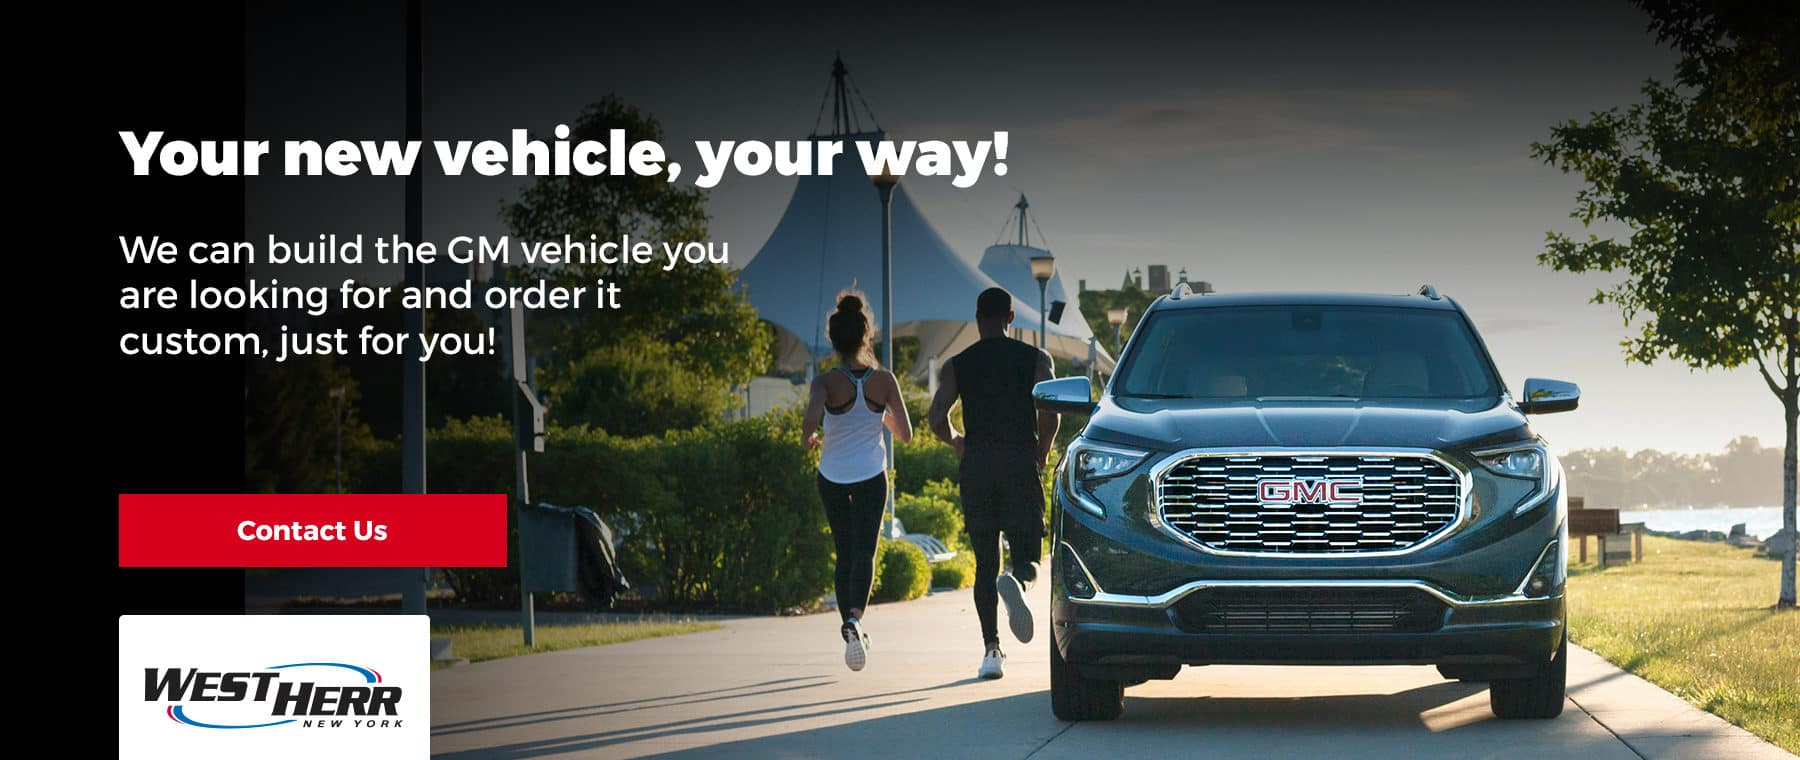 Your new vehicle, your way!